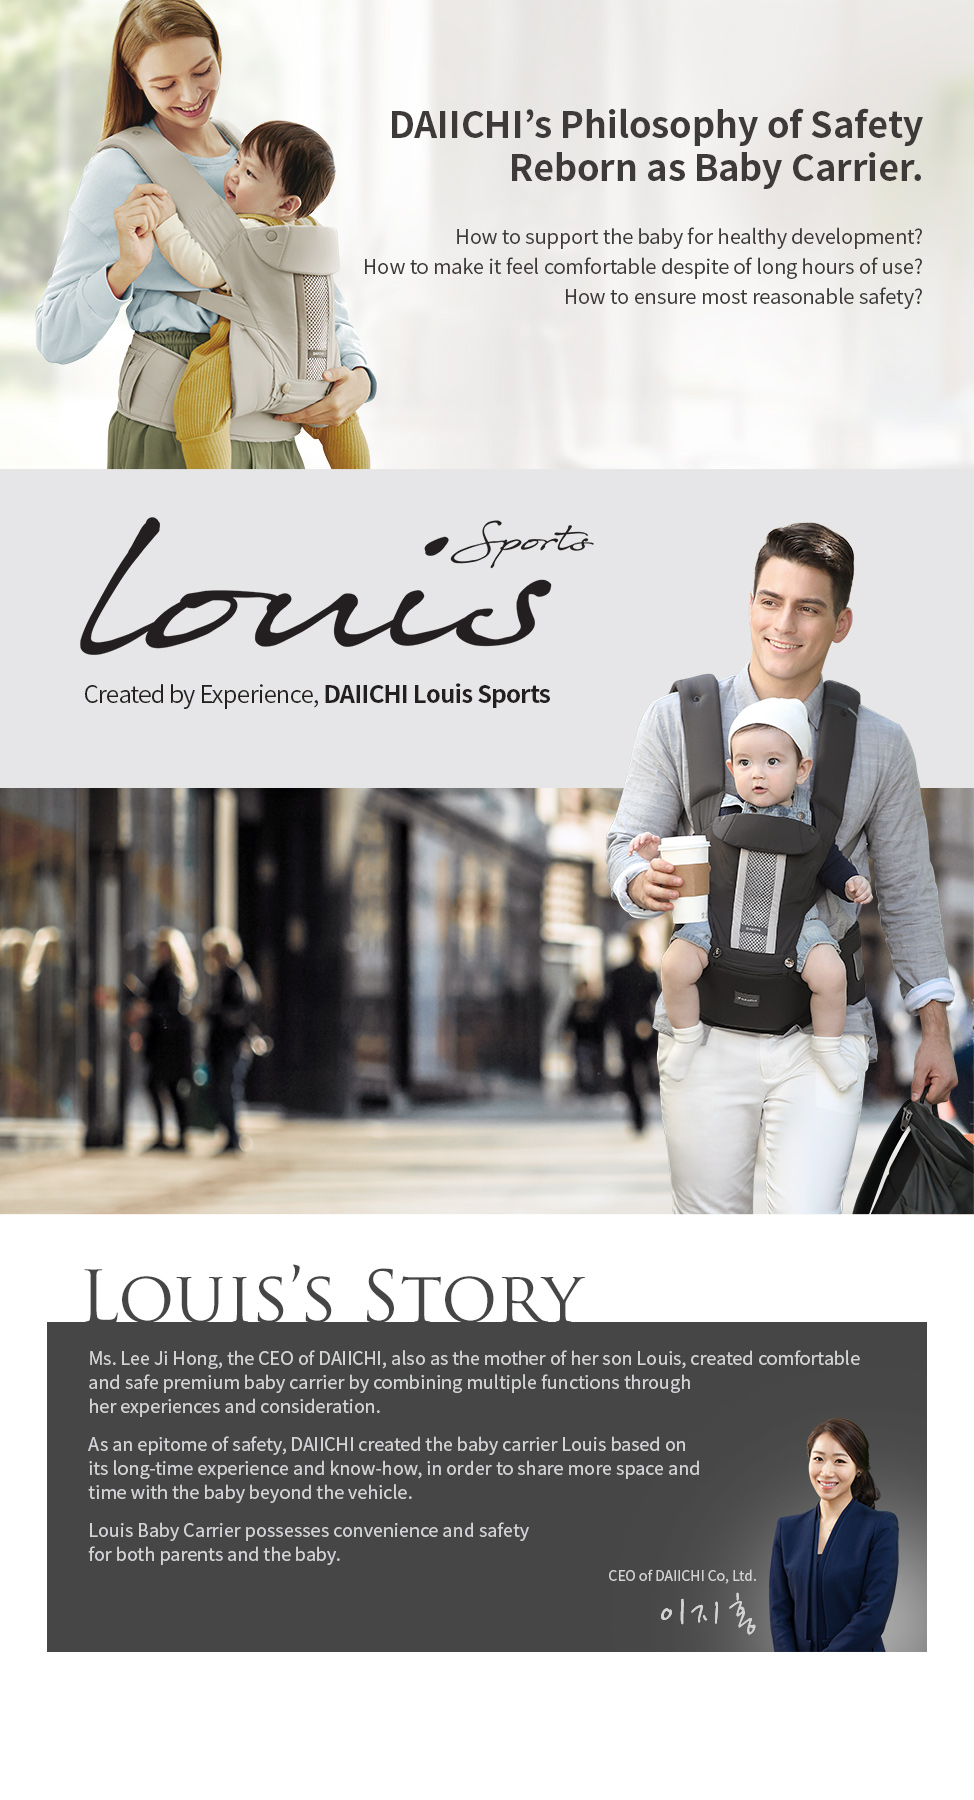 As an epitome of safety, DAIICHI created the baby carrier Louis based on its long-time experience and know-how, in order to share more space and time with the baby beyond the vehicle